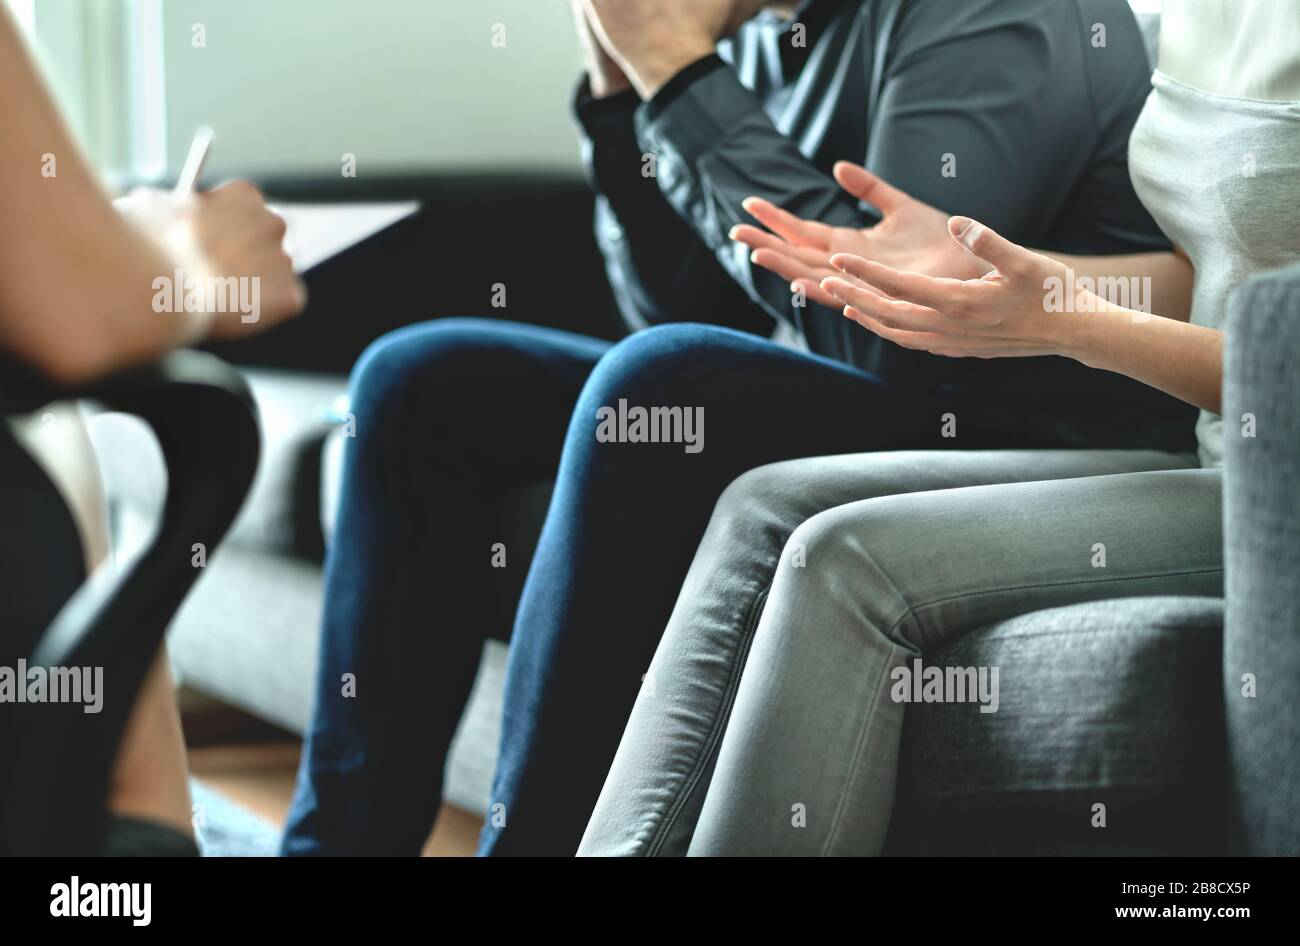 Angry couple argue in therapy. Dispute in marriage counseling. Custody battle, divorce, adoption, alimony, prenup or family problem. Stock Photo